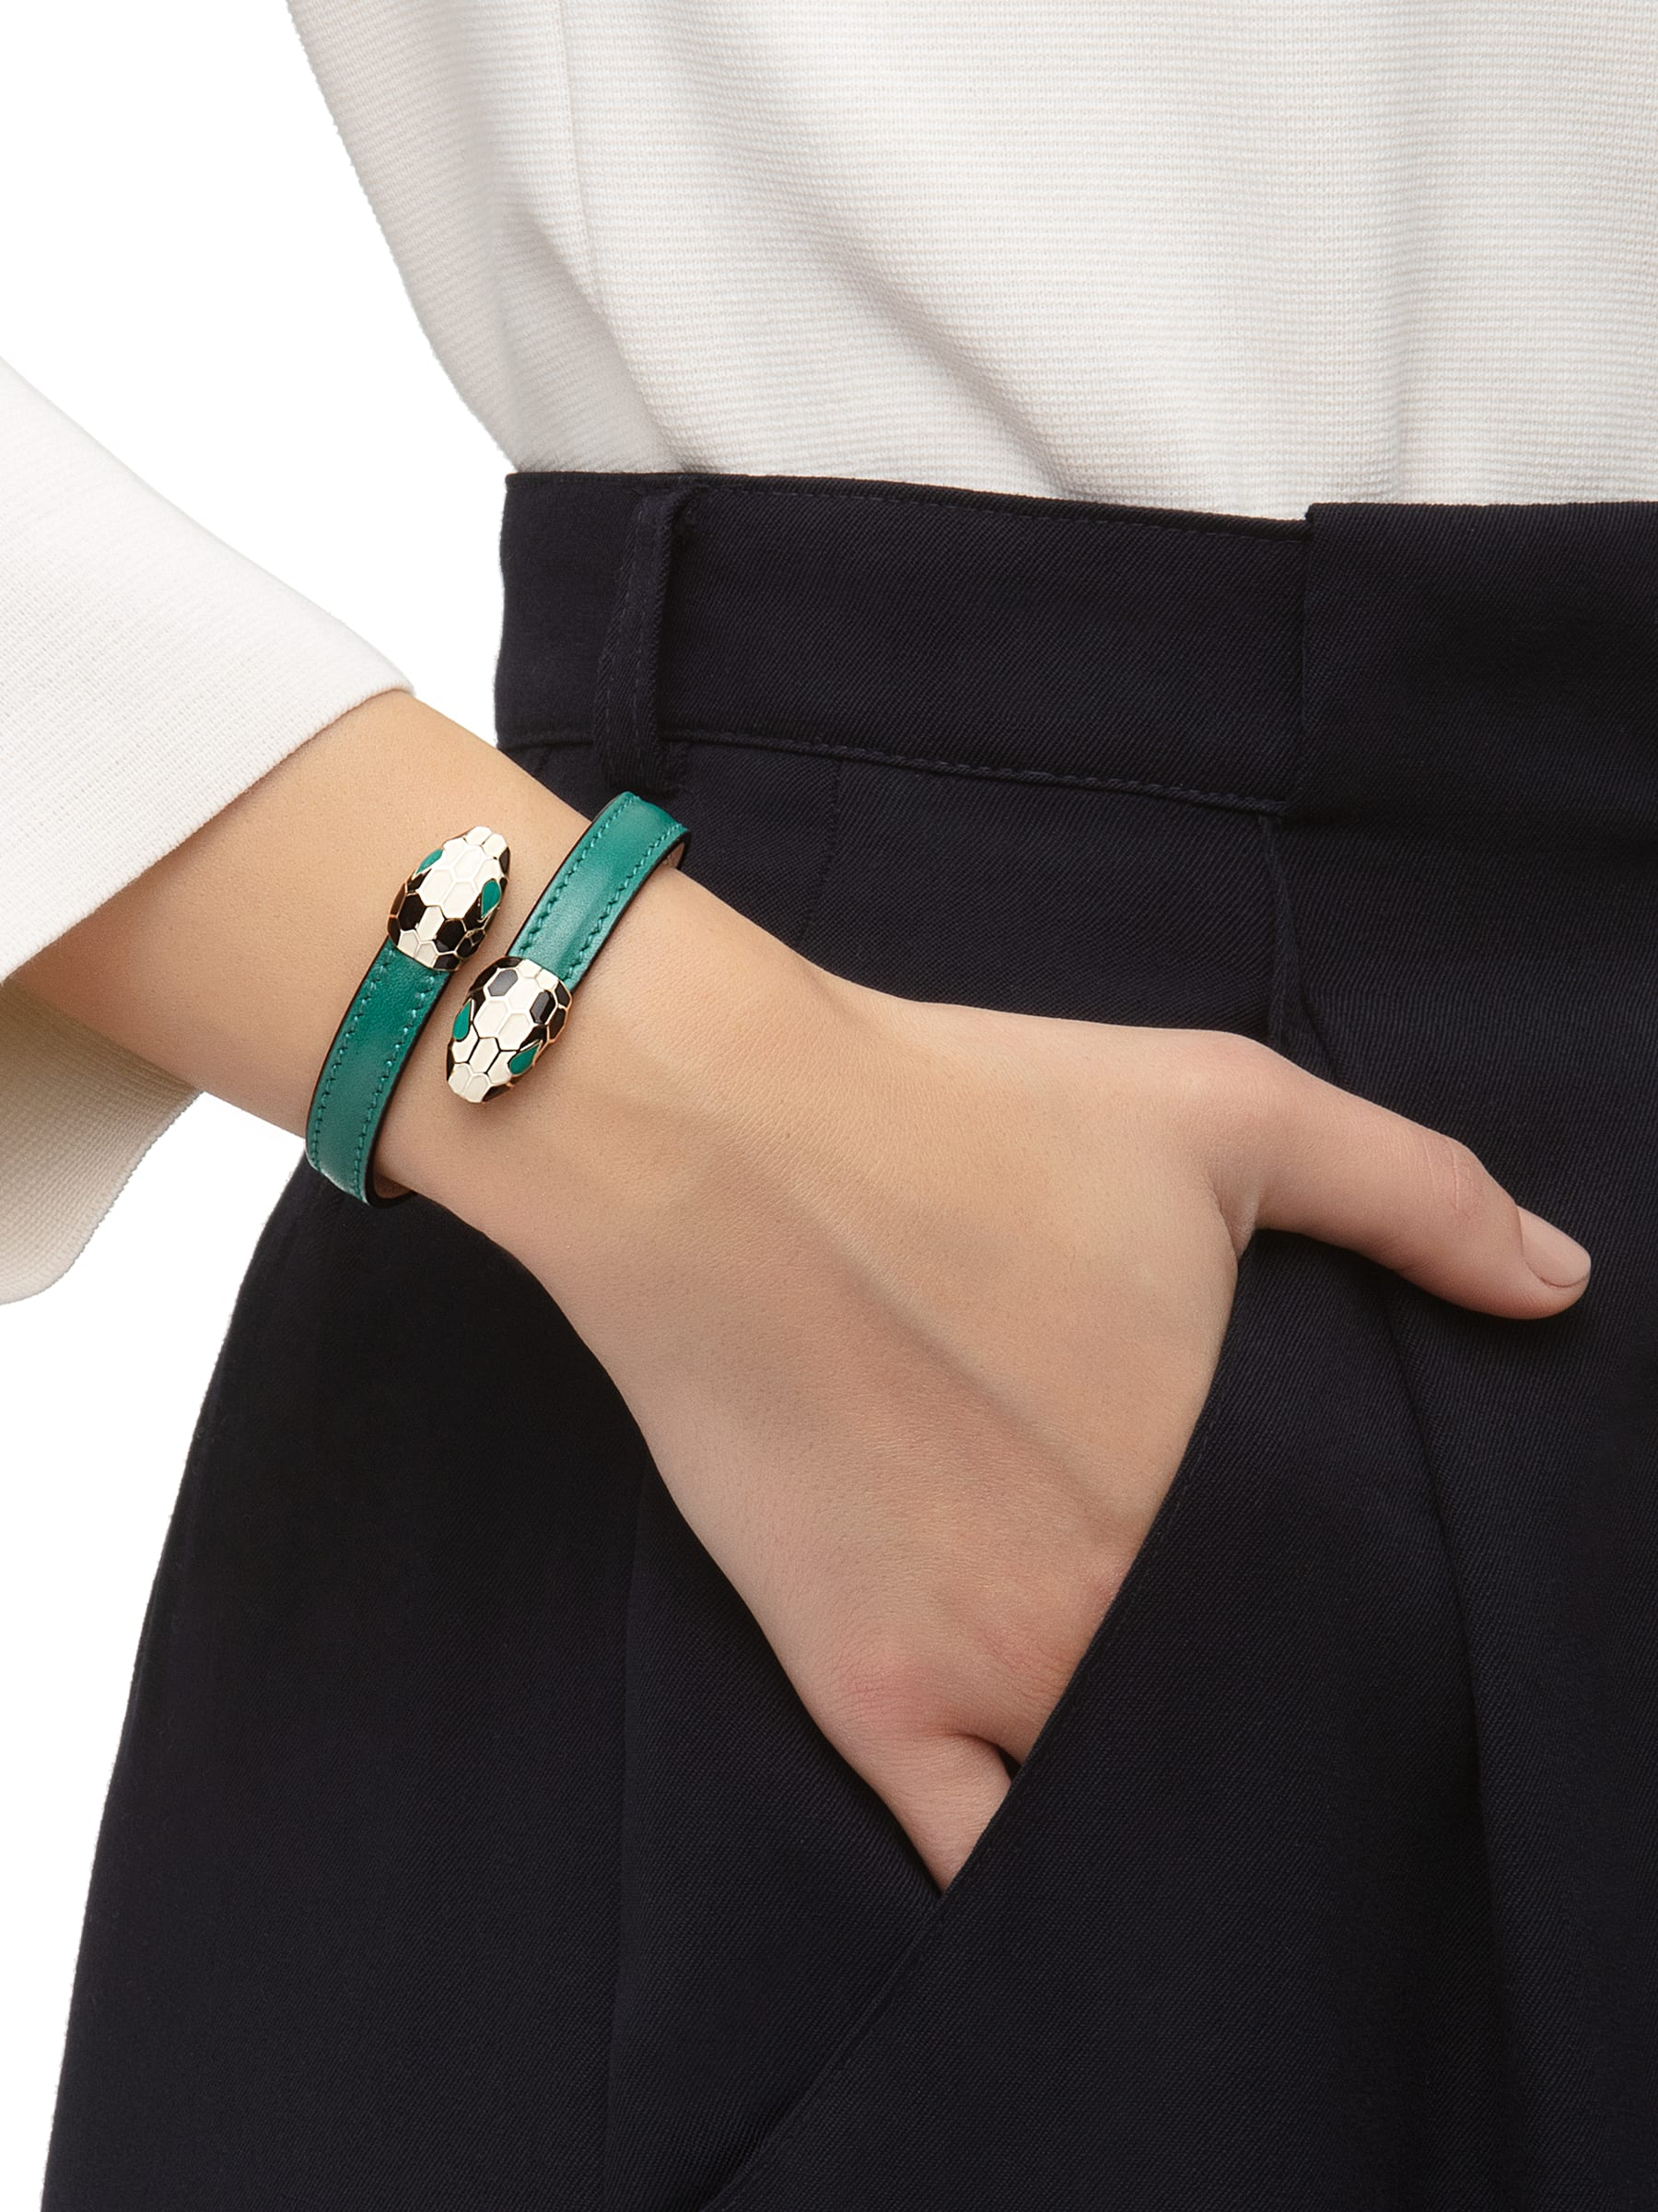 Serpenti Forever soft bangle bracelet in emerald green calf leather, with brass light gold plated hardware. Iconic contraire snakehead décor in black and white enamel, with green enamel eyes. SerpSoftContr-CL-EG image 2